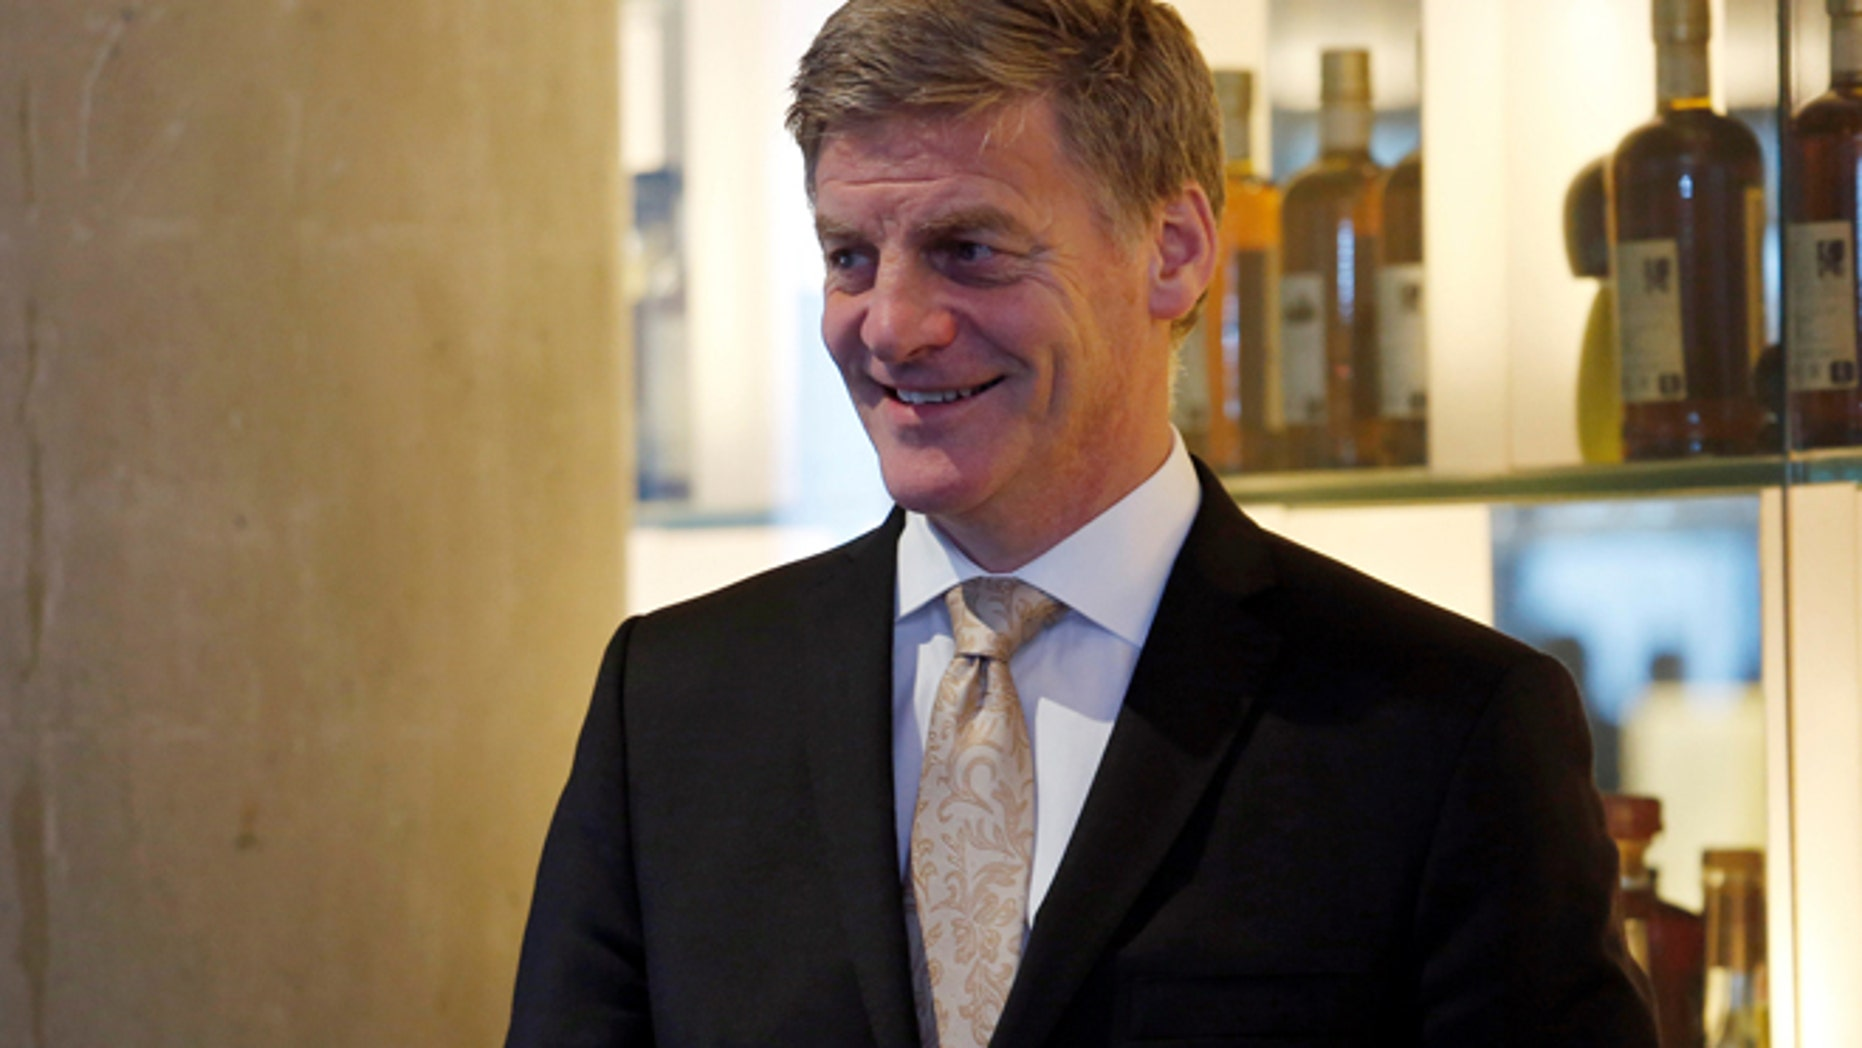 FILE: New Zealand Prime Minister Bill English attends an event to promote a New Zealand lamb product at a restaurant in Hong Kong